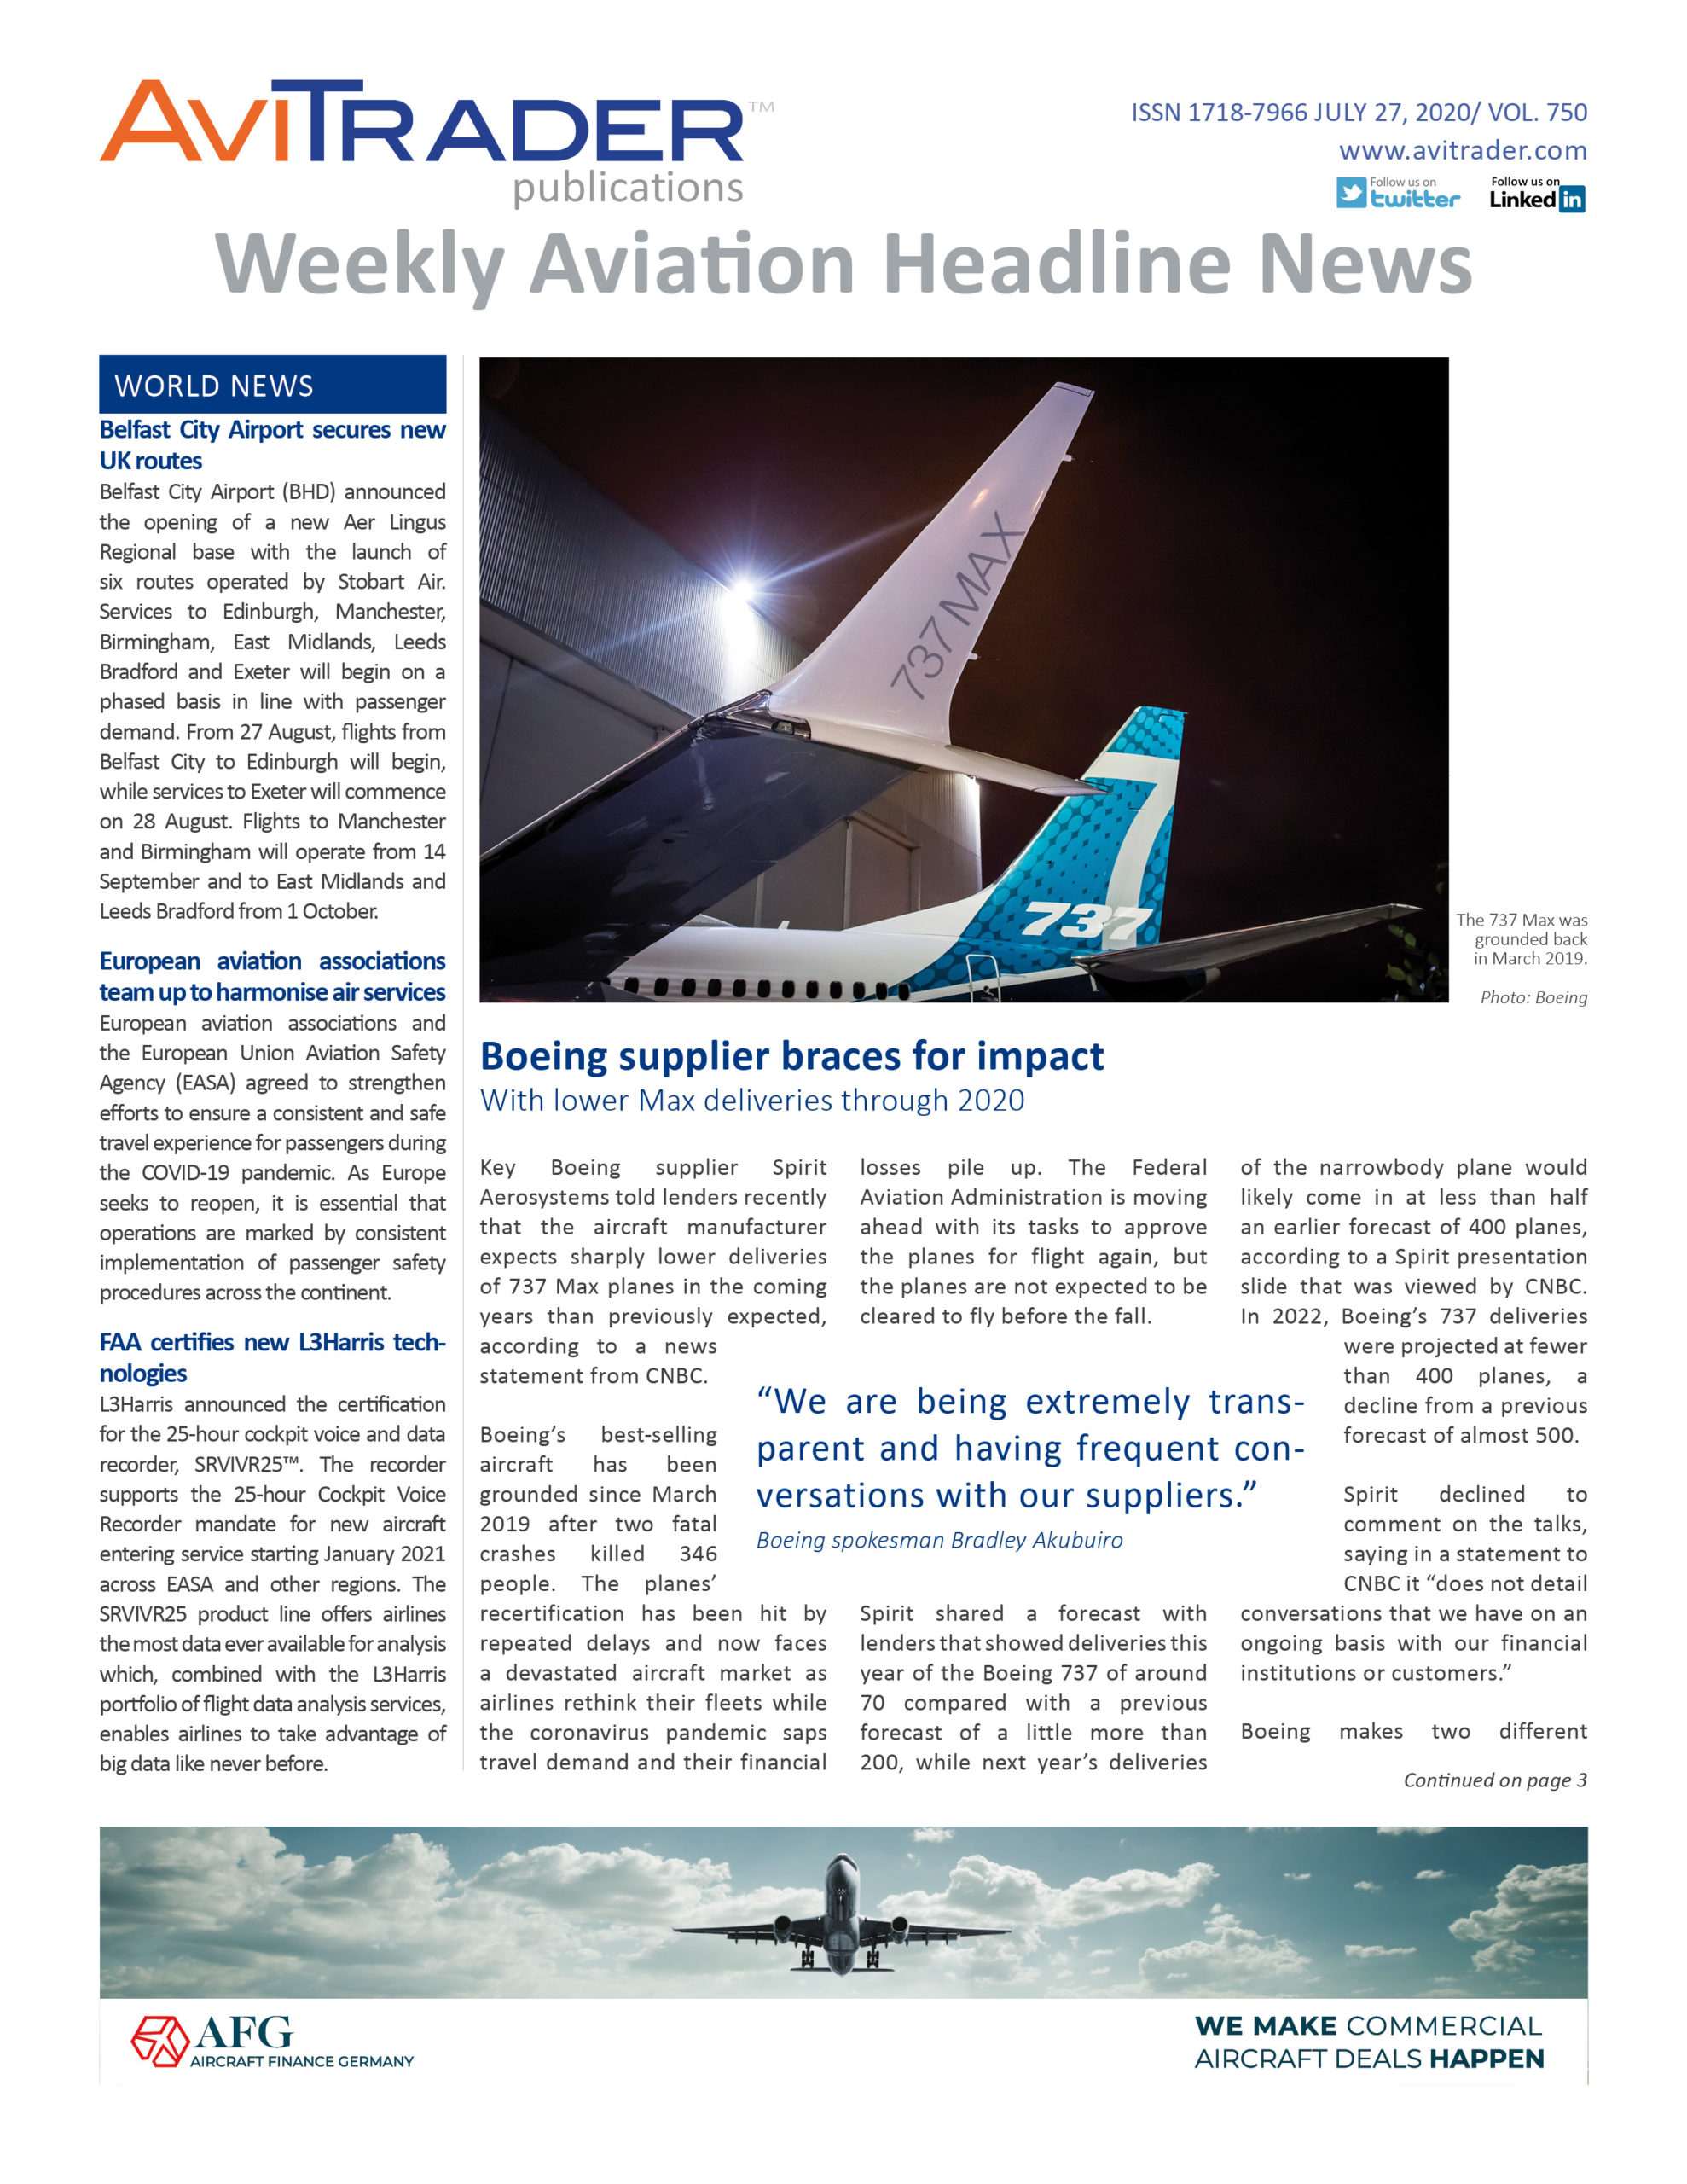 AviTrader_Weekly_Headline_News_Cover_2020-07-27